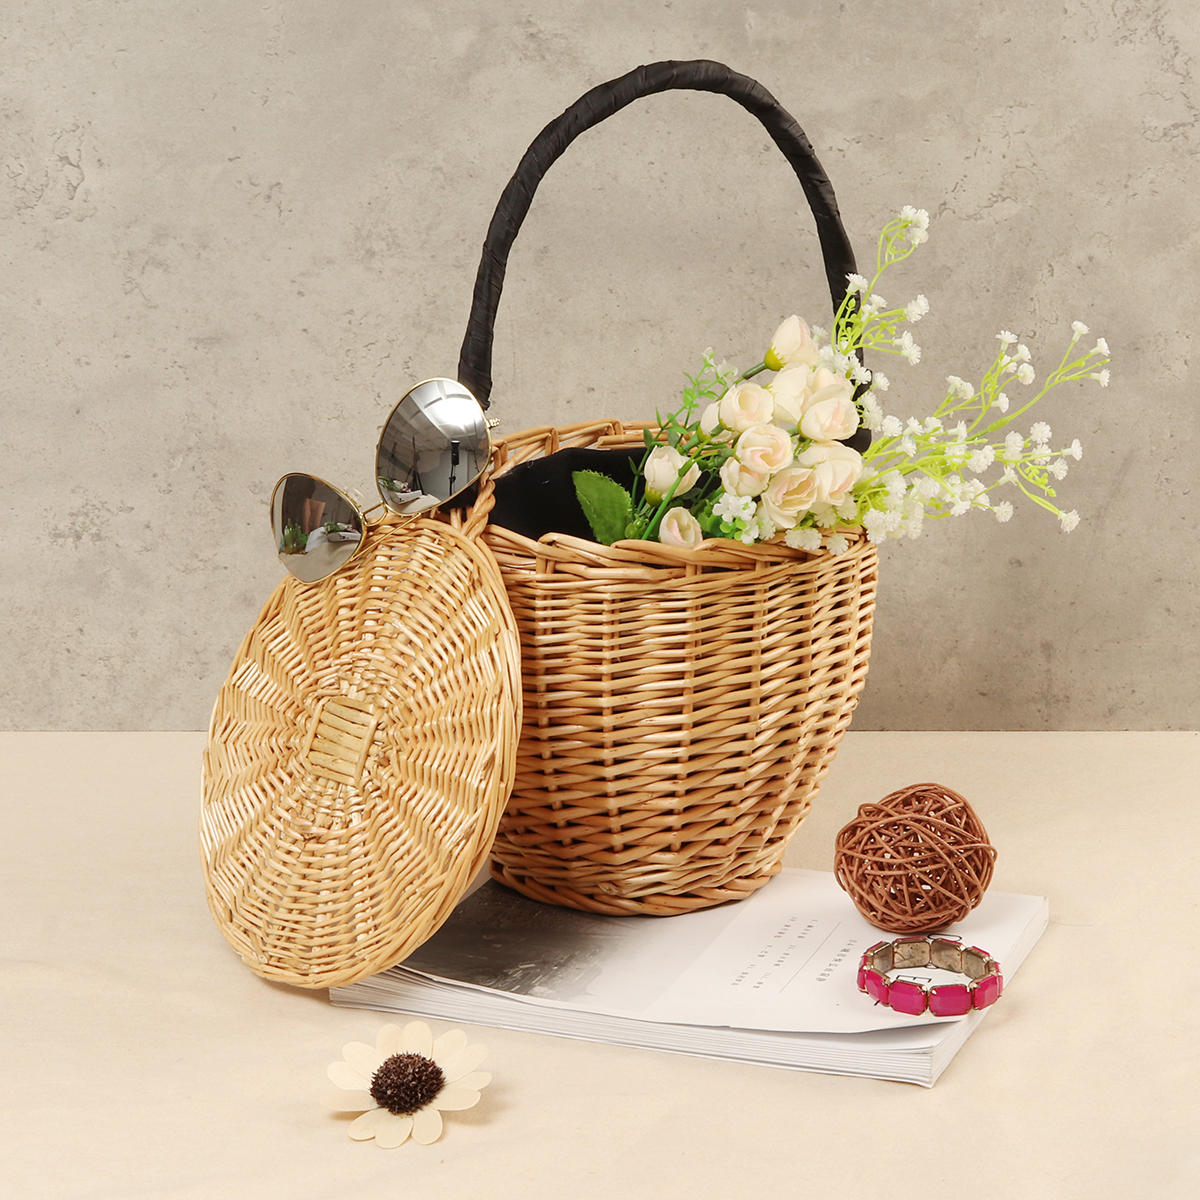 100% Handmade Straw Woven Tote Wicker Bag With Lid Bamboo Basket Handbag